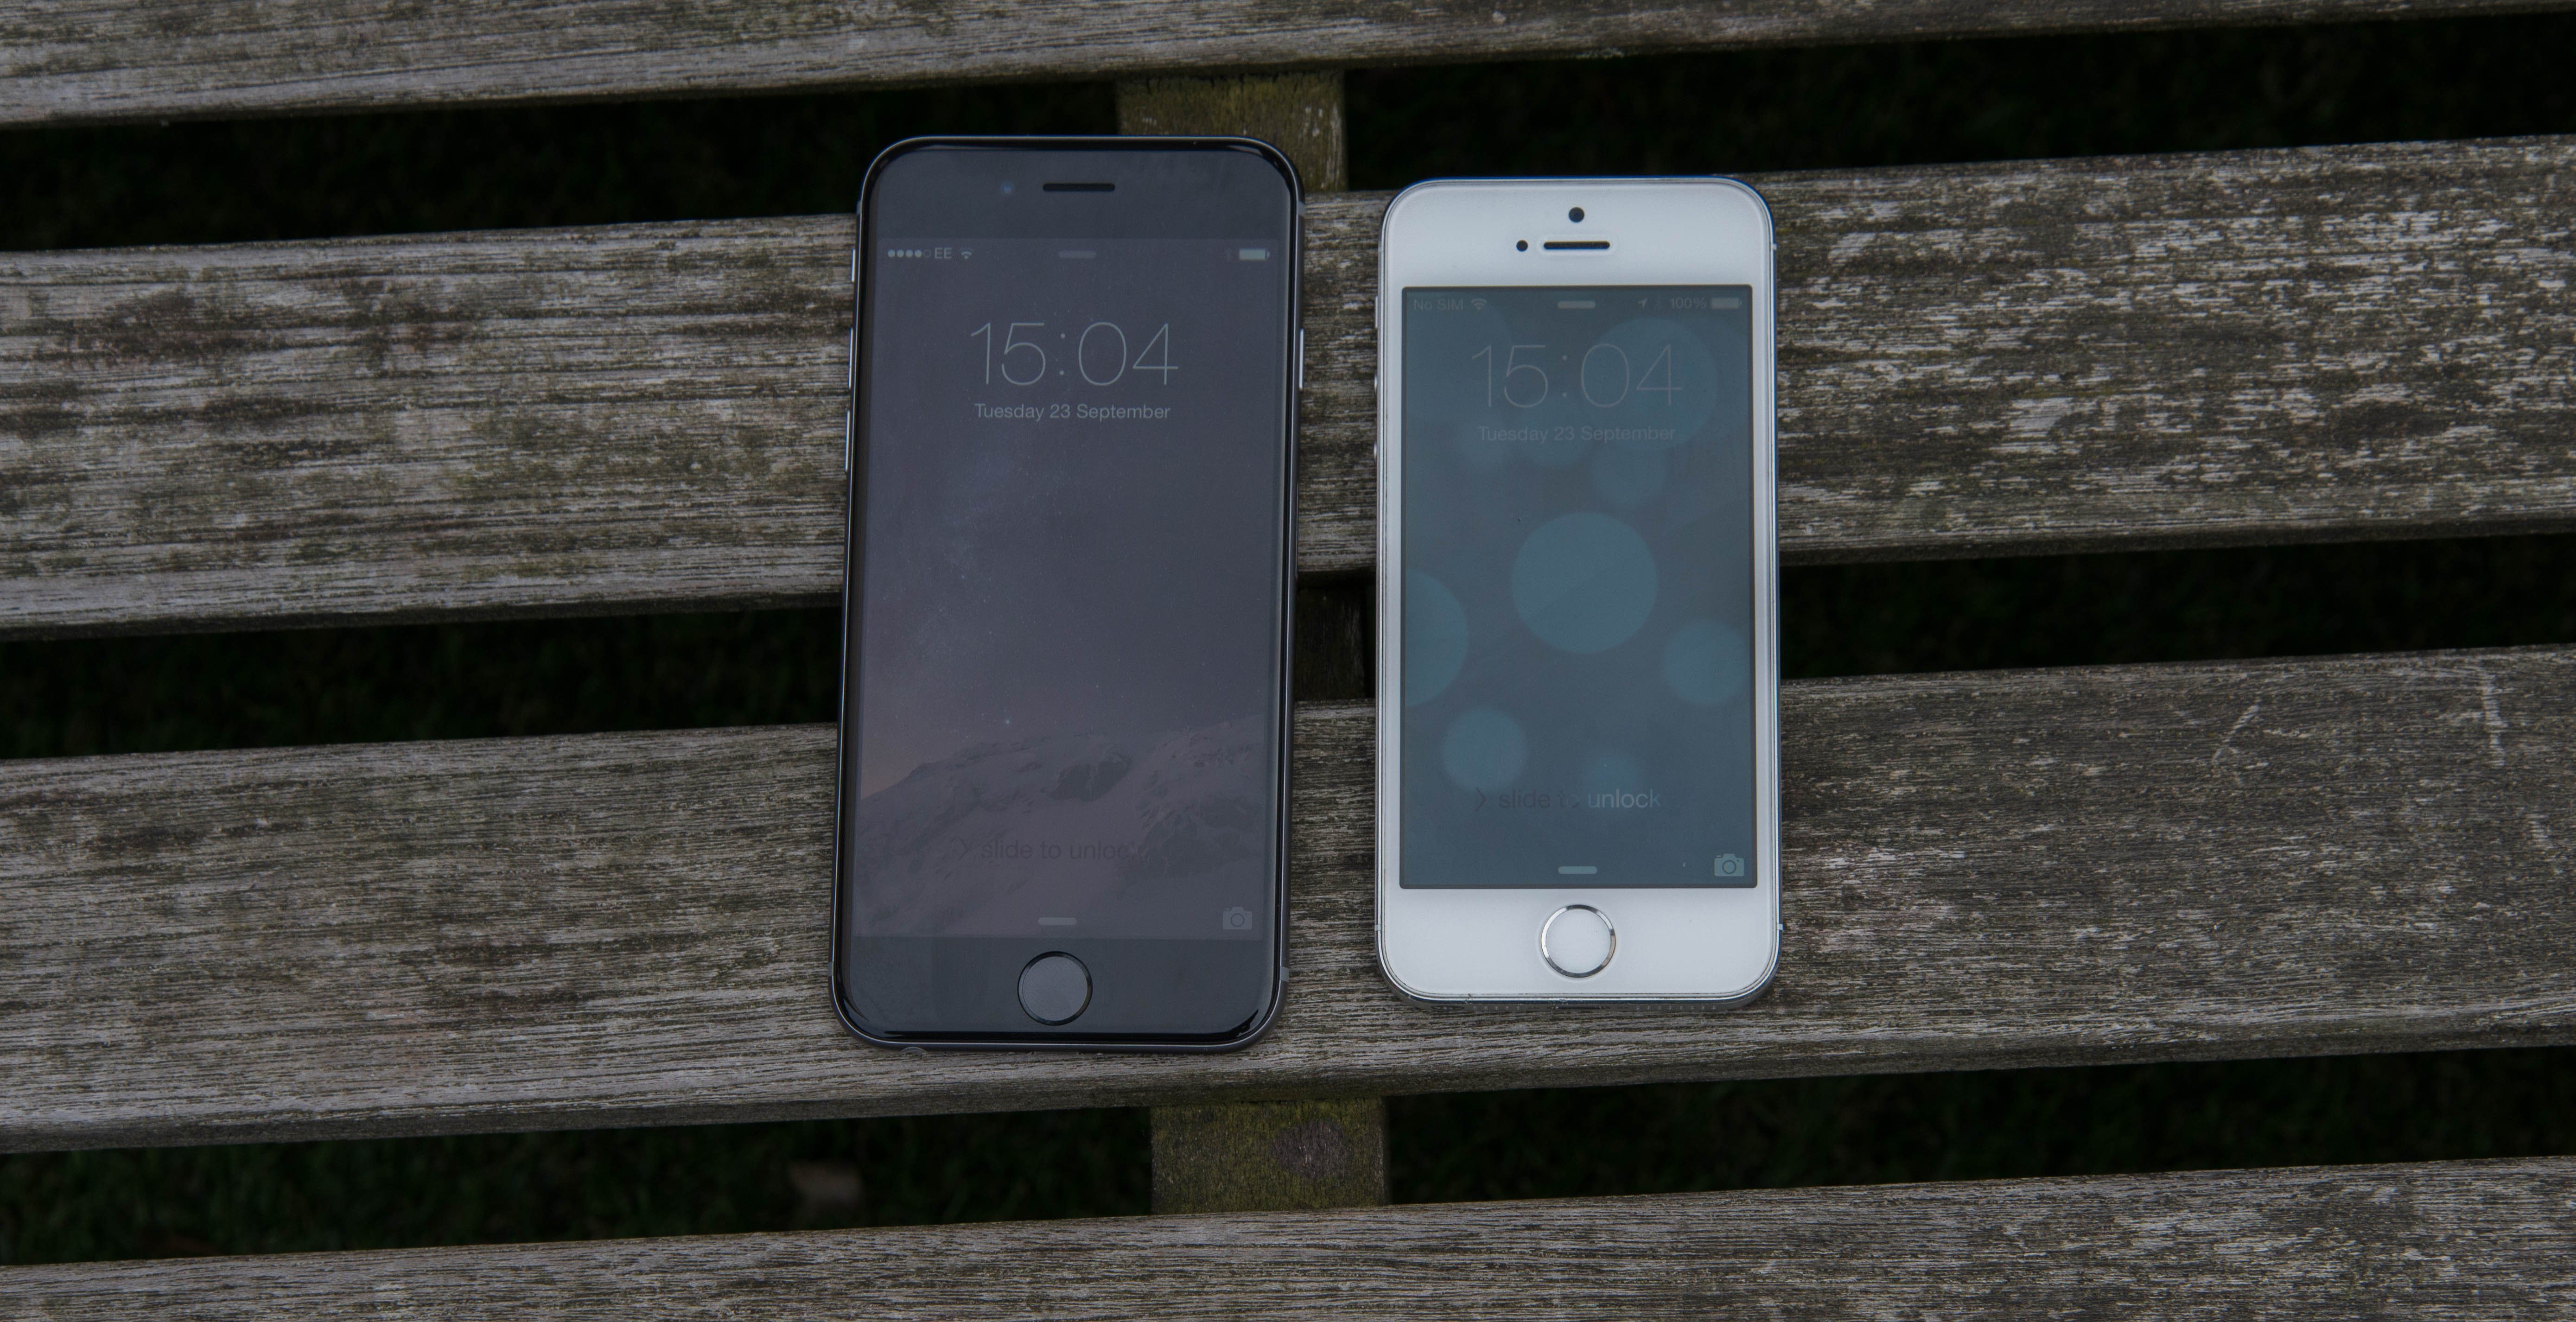 iphone 5s compared to iphone 6